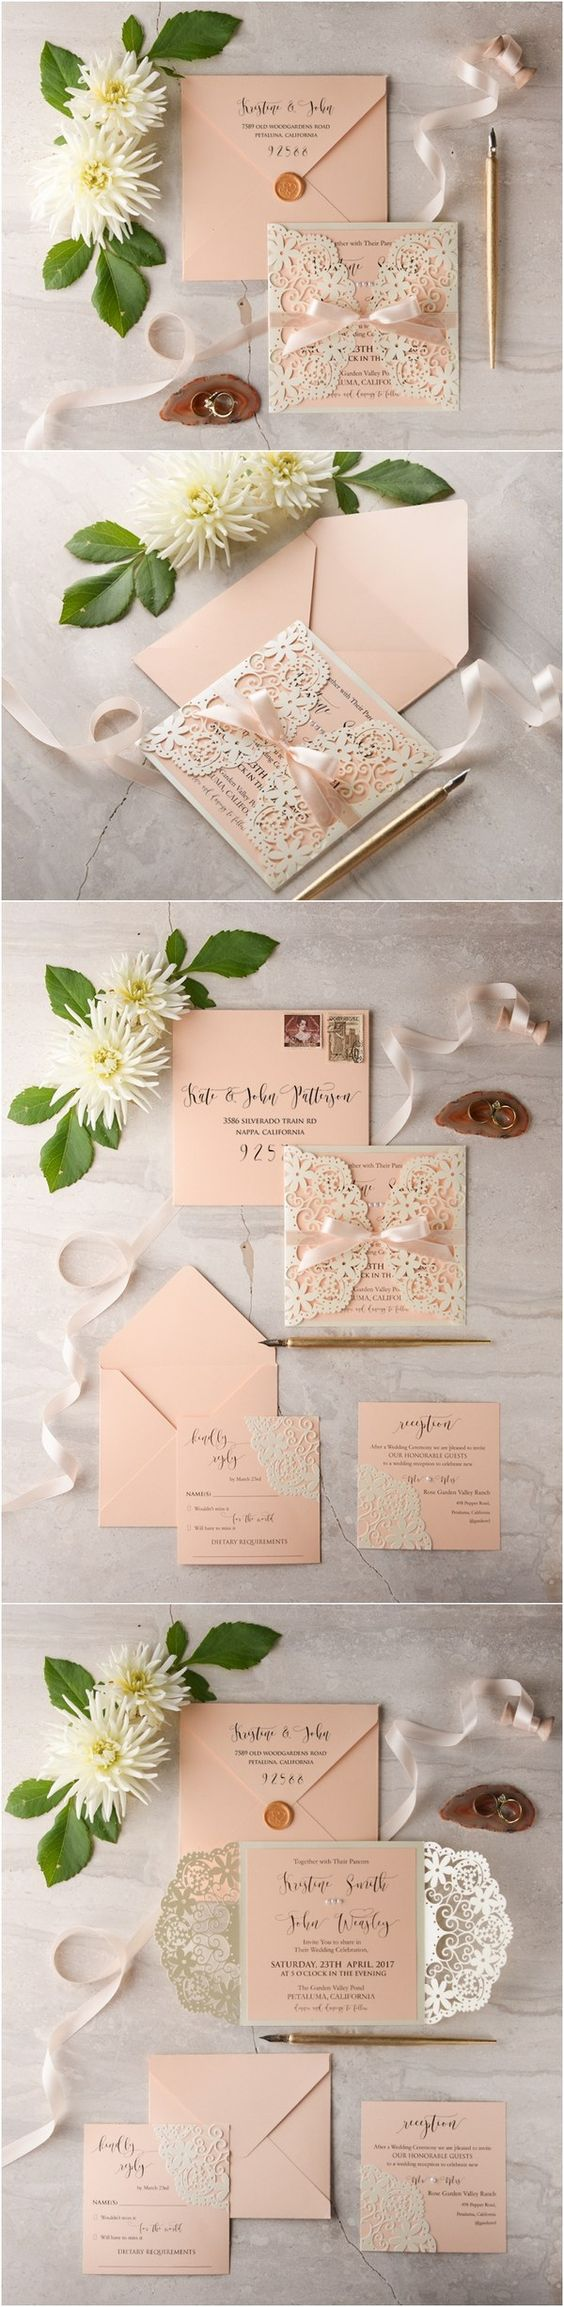 best images about wedding preparation on pinterest